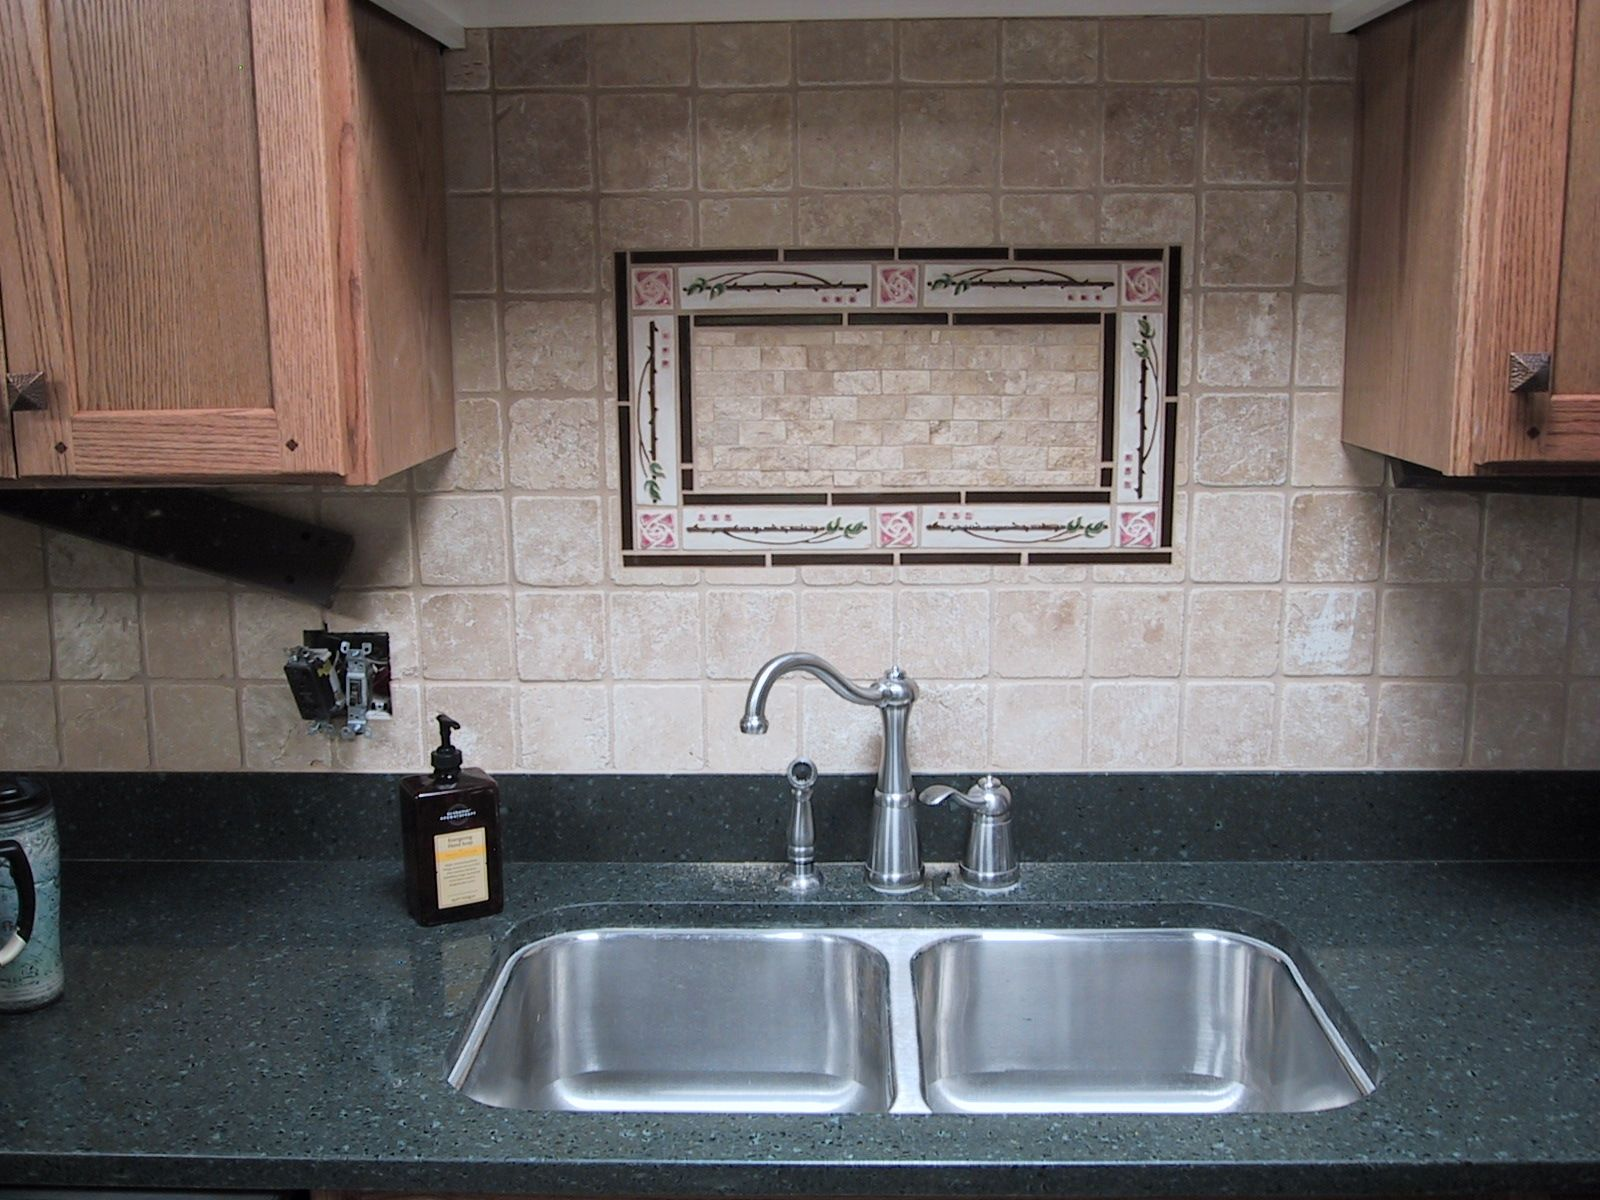 kitchen sink ideas 16001200 high definition wallpaper - Kitchen Sink Definition